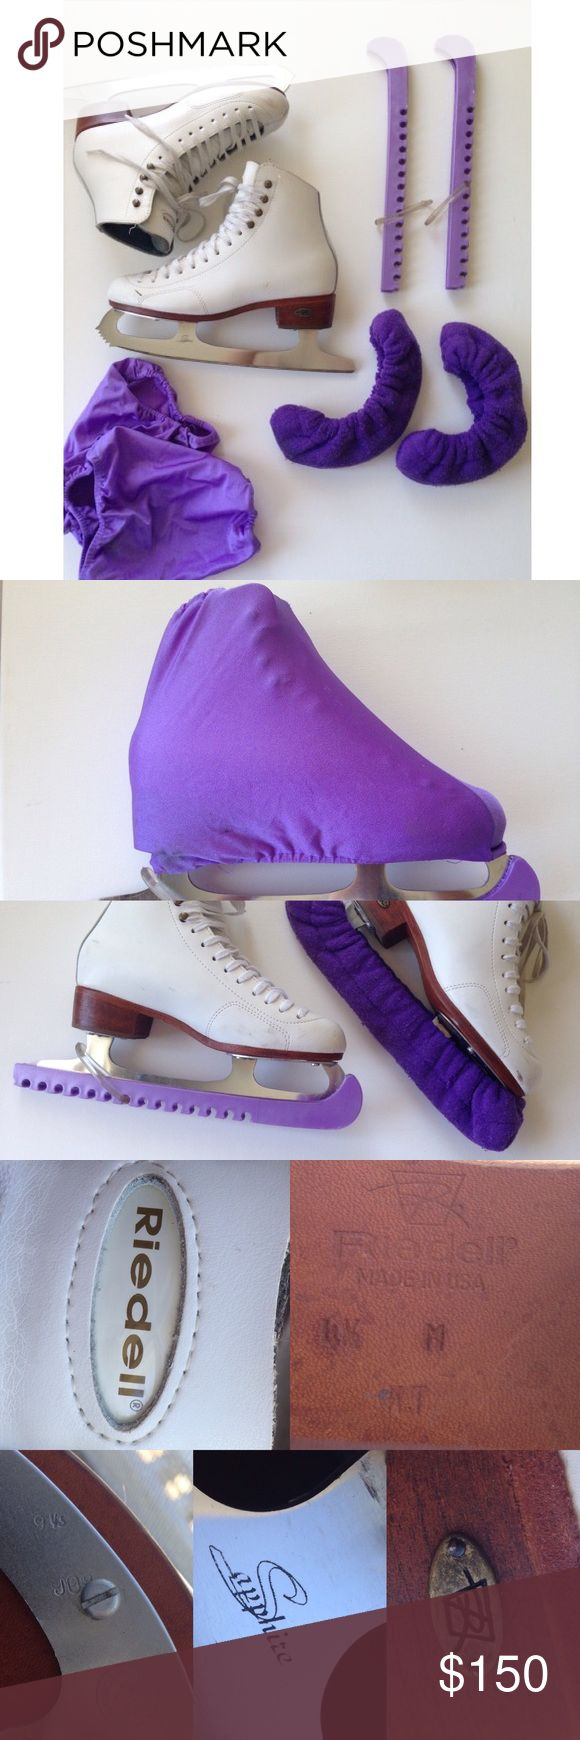 Riedell Bronze Medallion 280 Figure Ice Skates Riedell Bronze Medallion 280 Figure Ice Skates- 8/10 condition, AMAZING quality contains:  2 purple A&R BladeGards Skate Guards  2 purple A&R Blade covers 2 purple boot covers   boot retails $210  -sapphire performance blade: Made in Canada -heat activated form fit -leather outsoles; foam-backed cambrelle lining Boots made in USA• Riedell  SIZE 4.5 ( convert your foot size )all BOOT flaws on leather are shown in the last picture, I do not have…